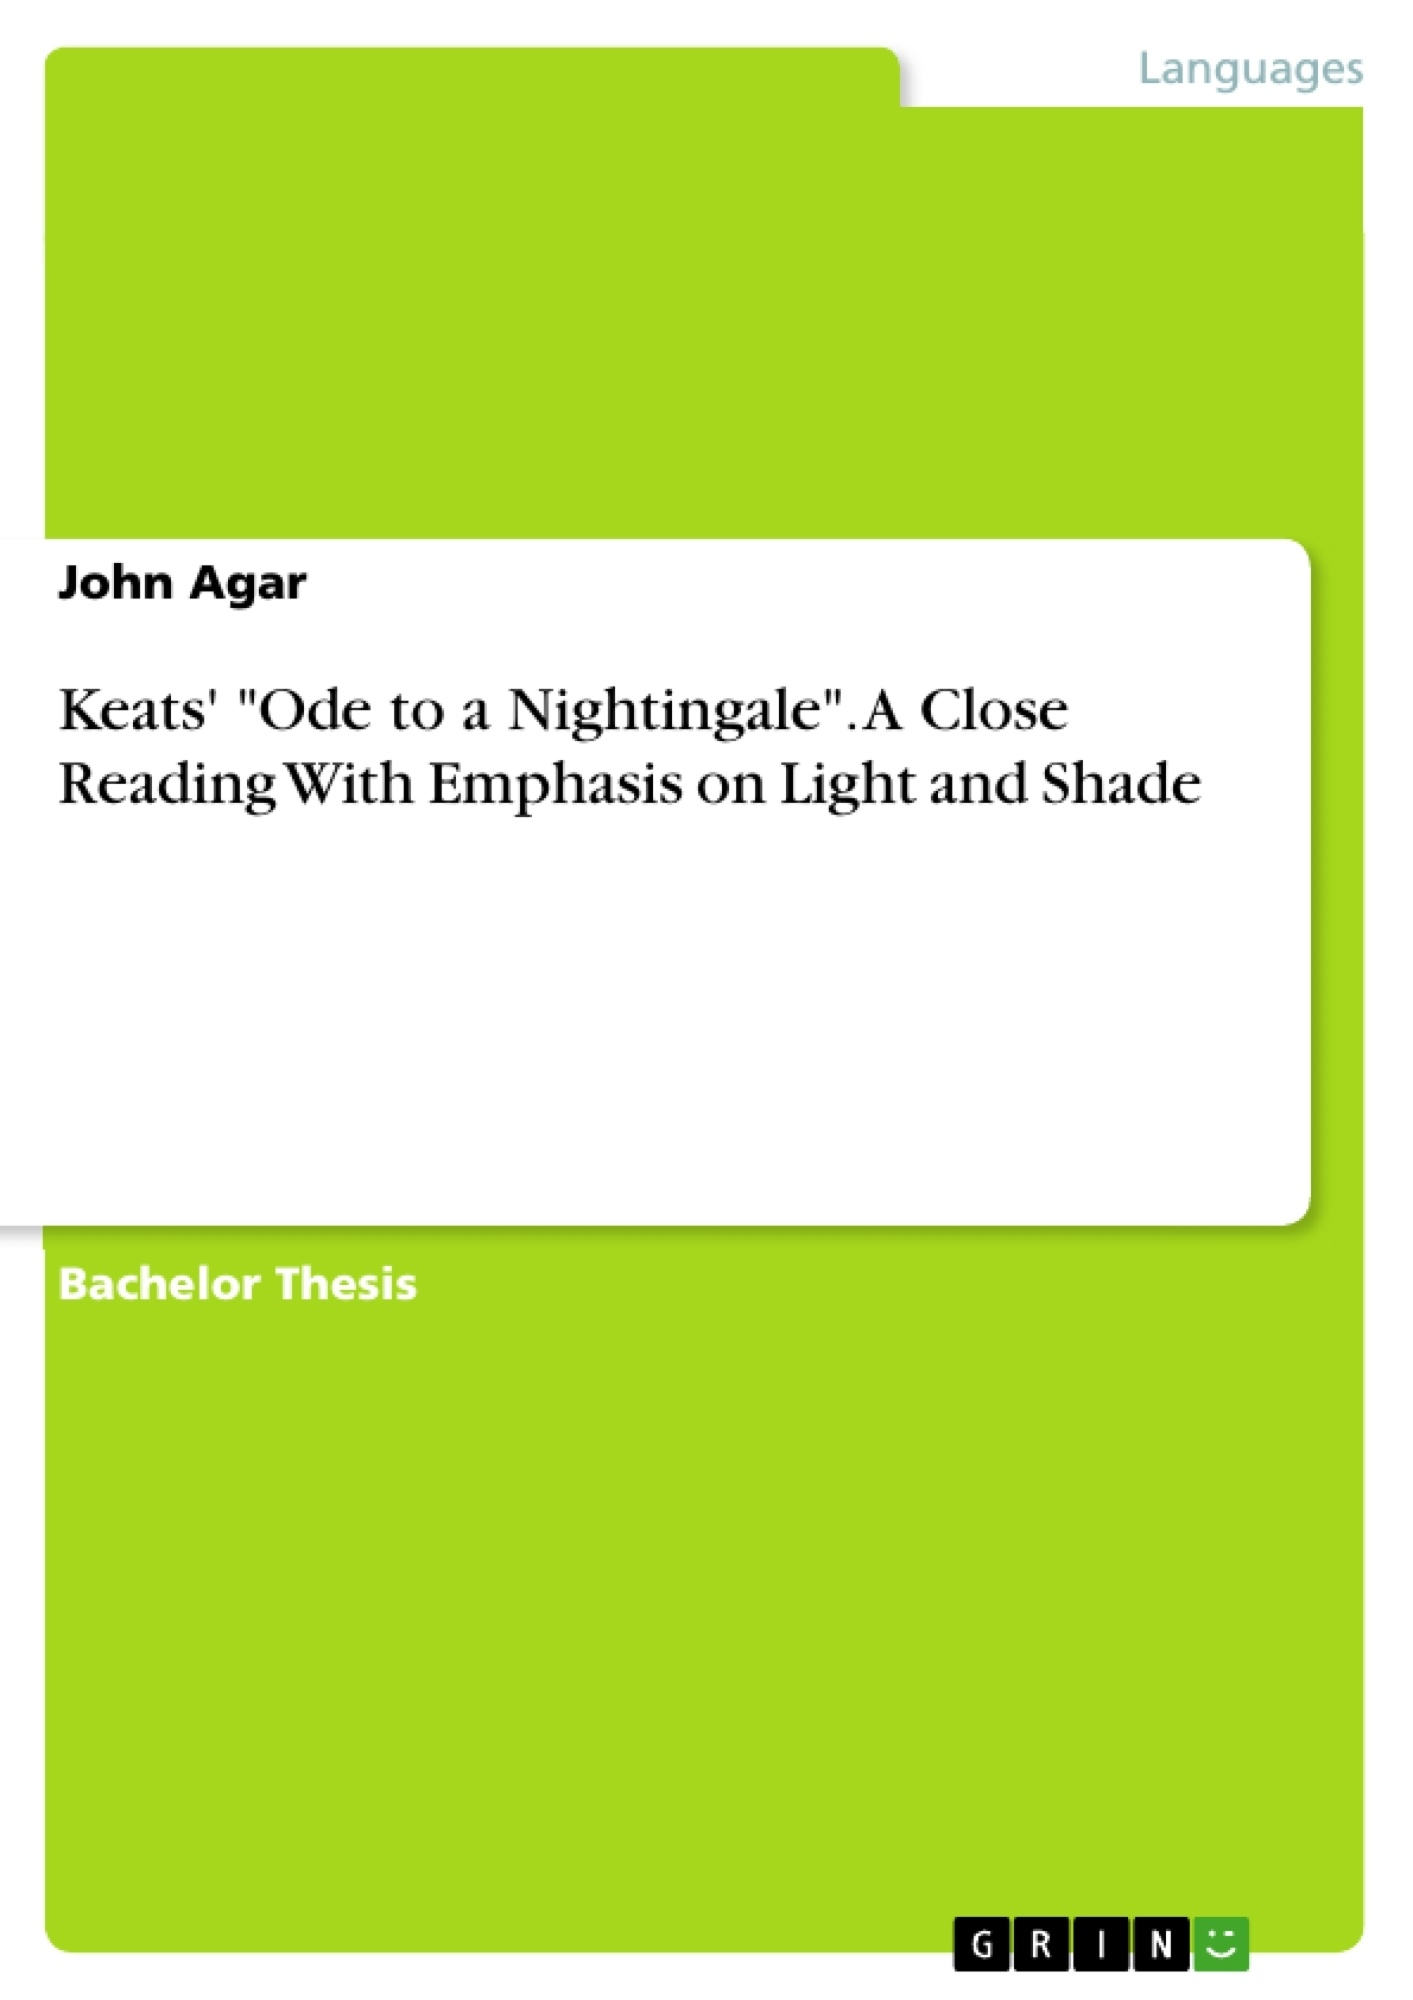 keats ode to a nightingale a close reading emphasis on a close reading emphasis on publish your master s thesis bachelor s thesis essay or term paper